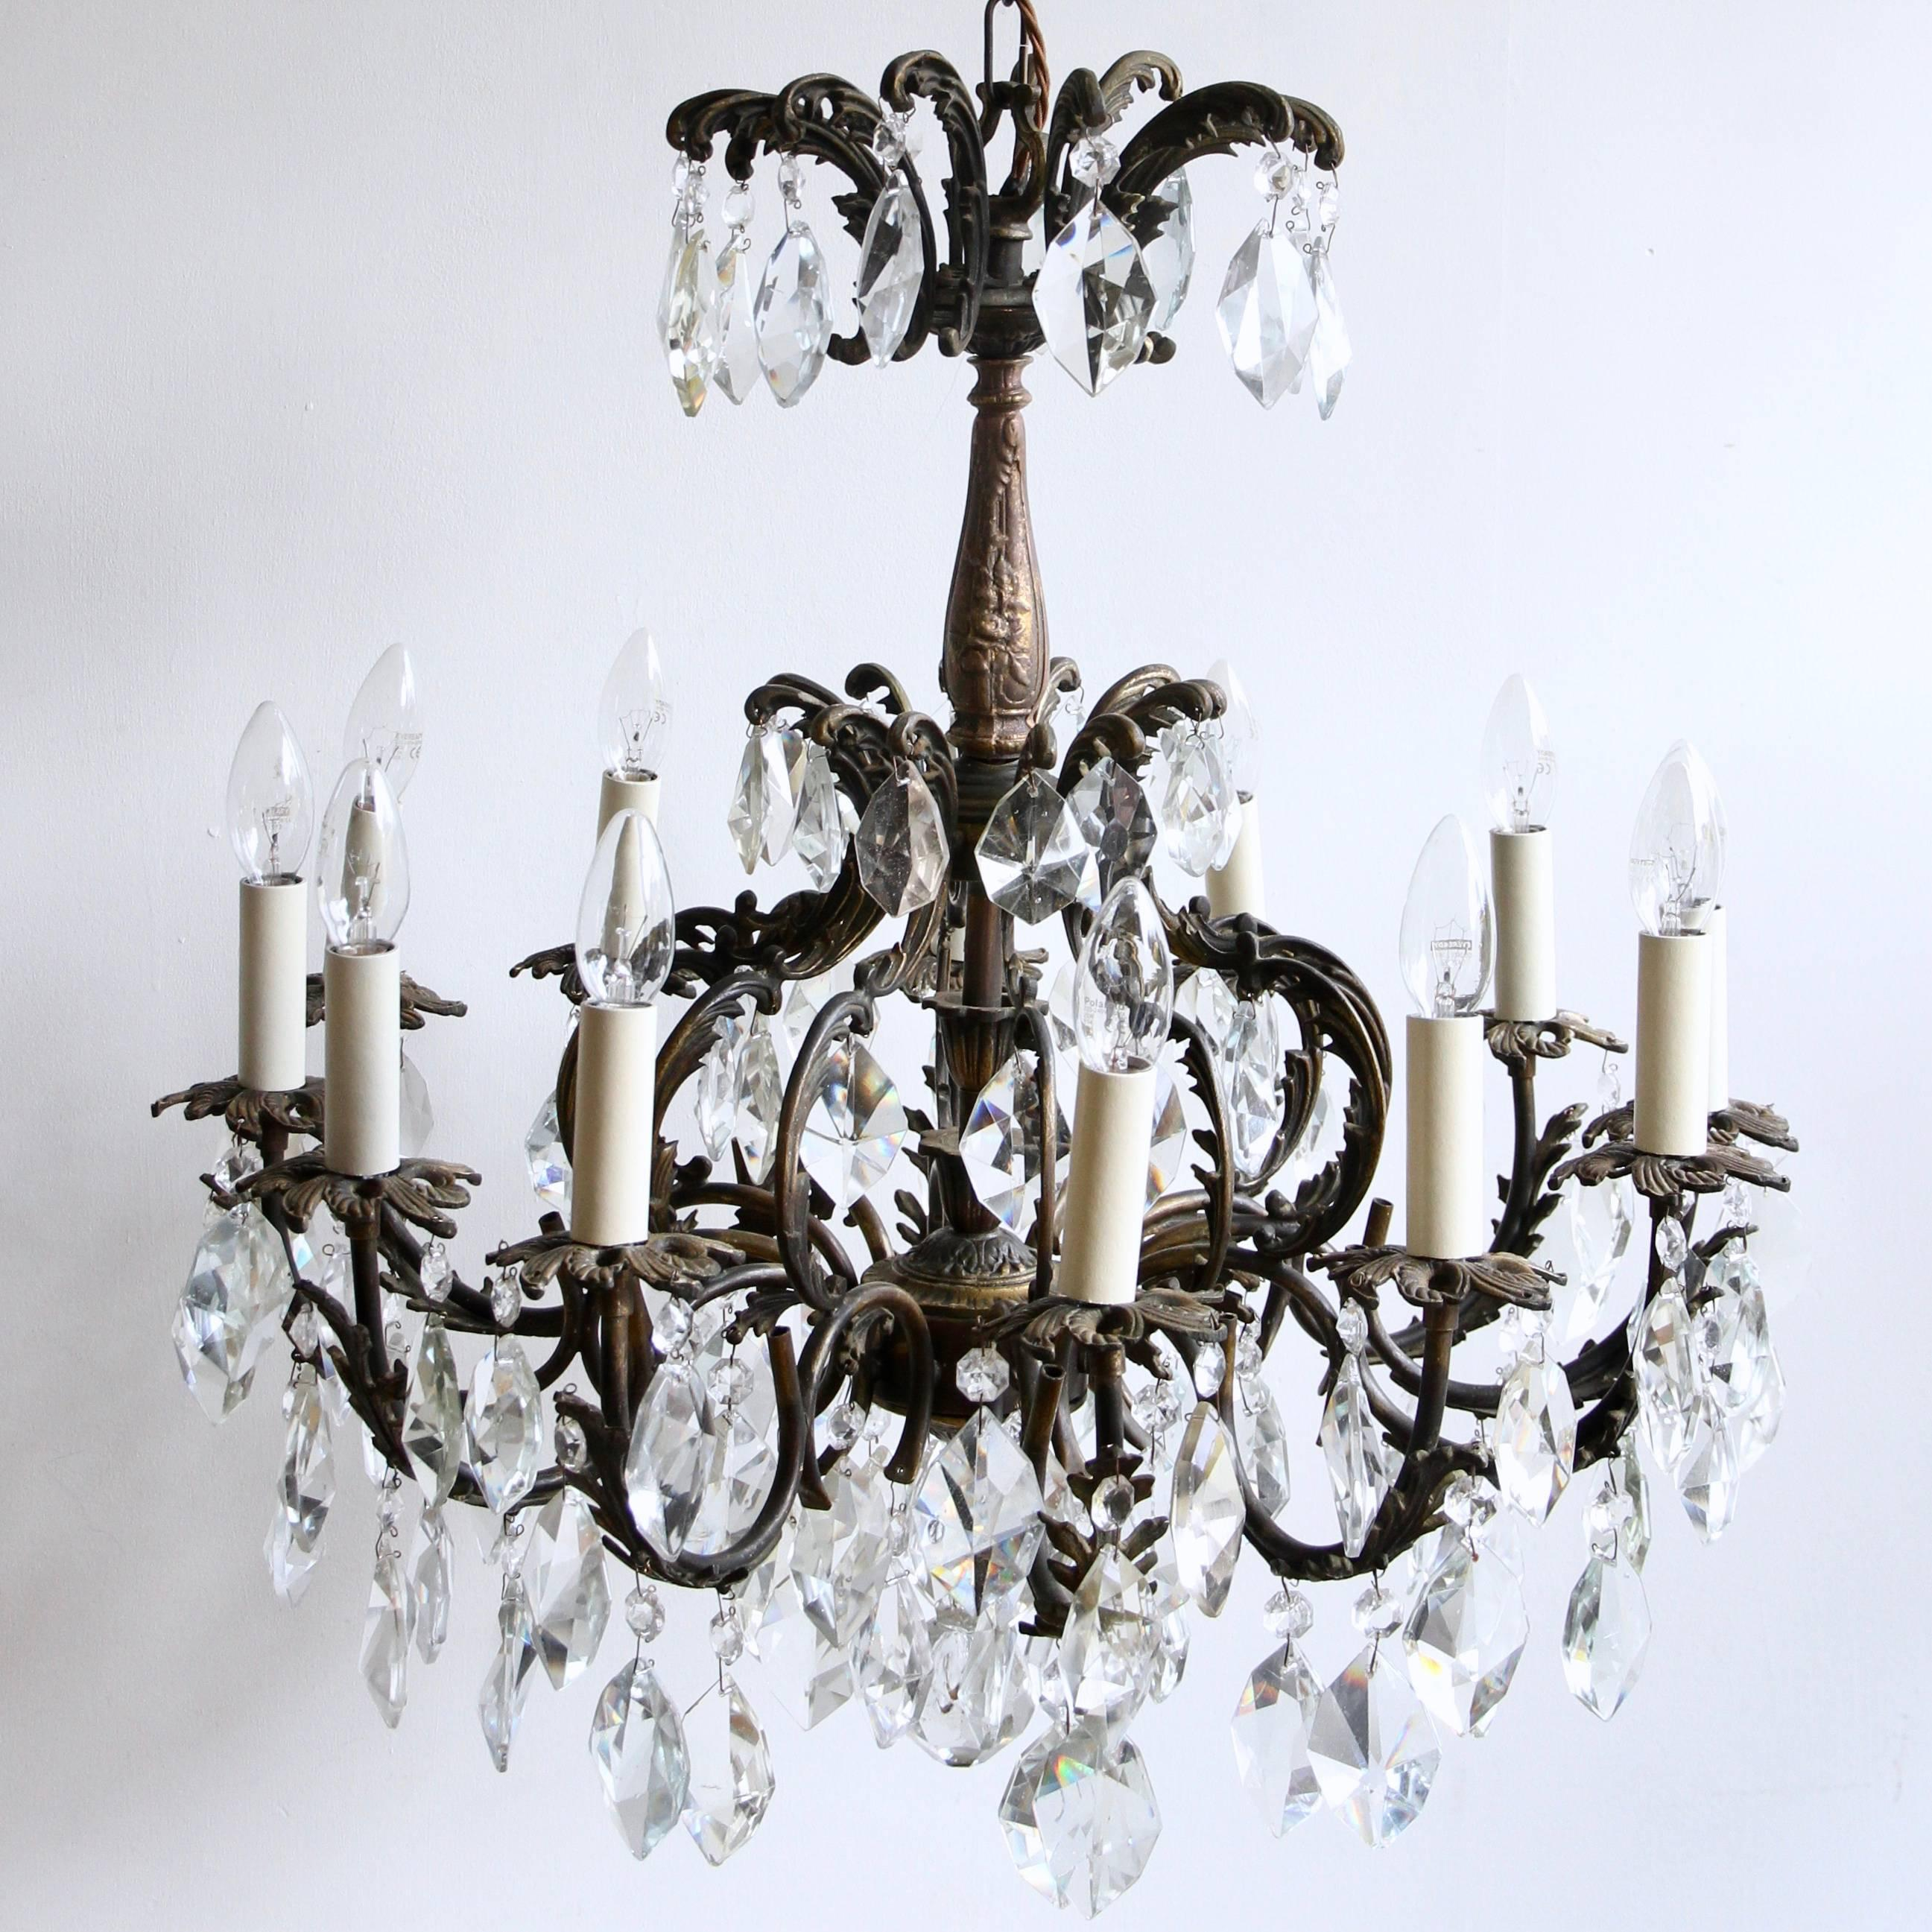 Early 1900s french ornate brass chandelier with cut crystal iceberg early 1900s french ornate brass chandelier with cut crystal iceberg drops for sale at 1stdibs aloadofball Gallery